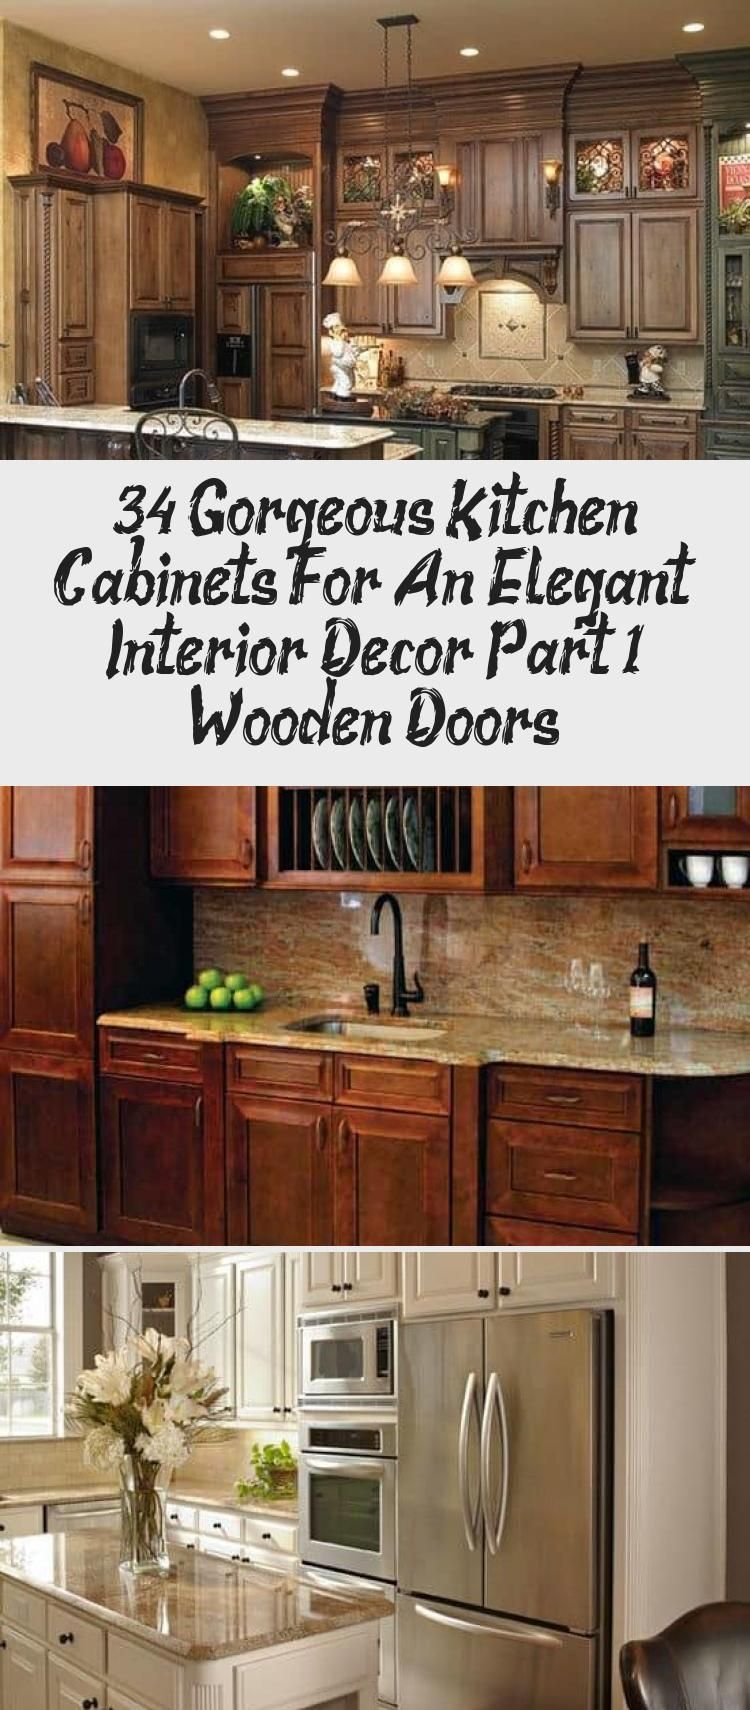 Photo of 34 Gorgeous Kitchen Cabinets For An Elegant Interior Decor Part 1- Wooden Doors – DECORATION